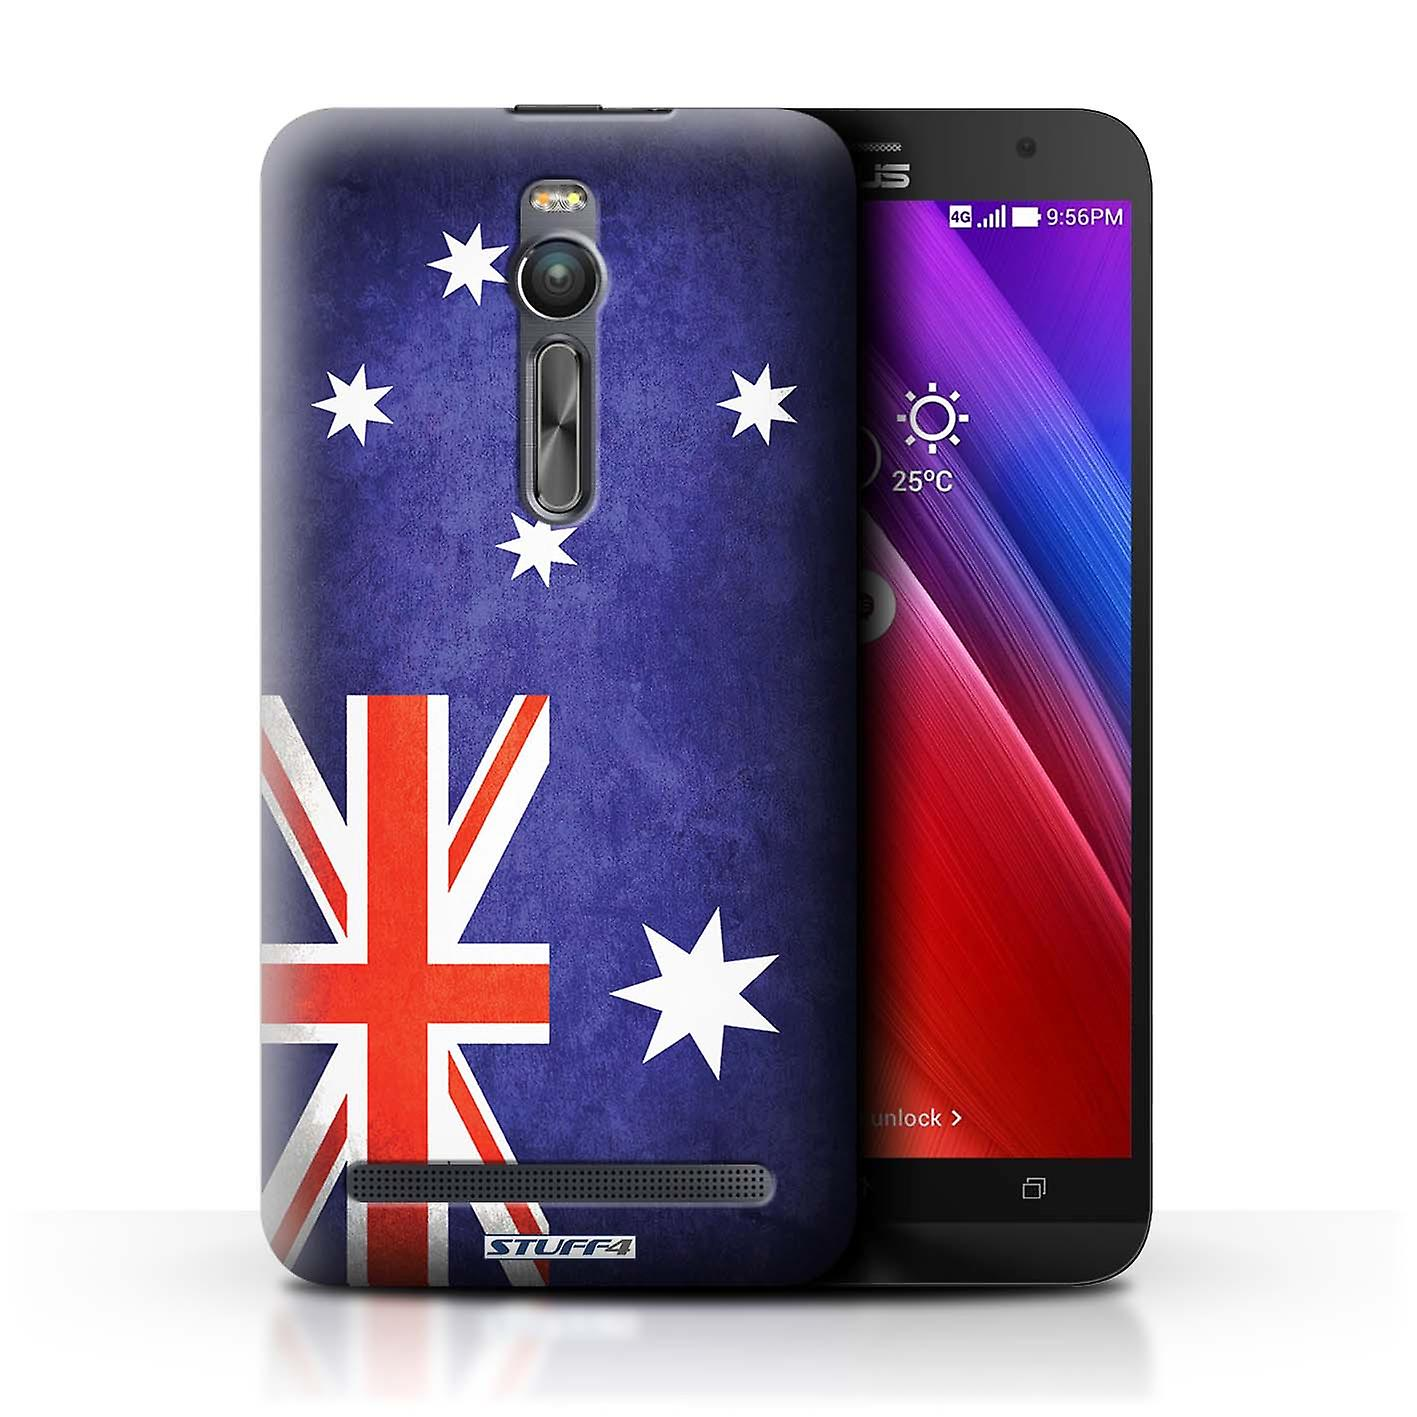 STUFF4 Case/Cover for Asus Zenfone 2 ZE551ML/Australia/Australian/Flags